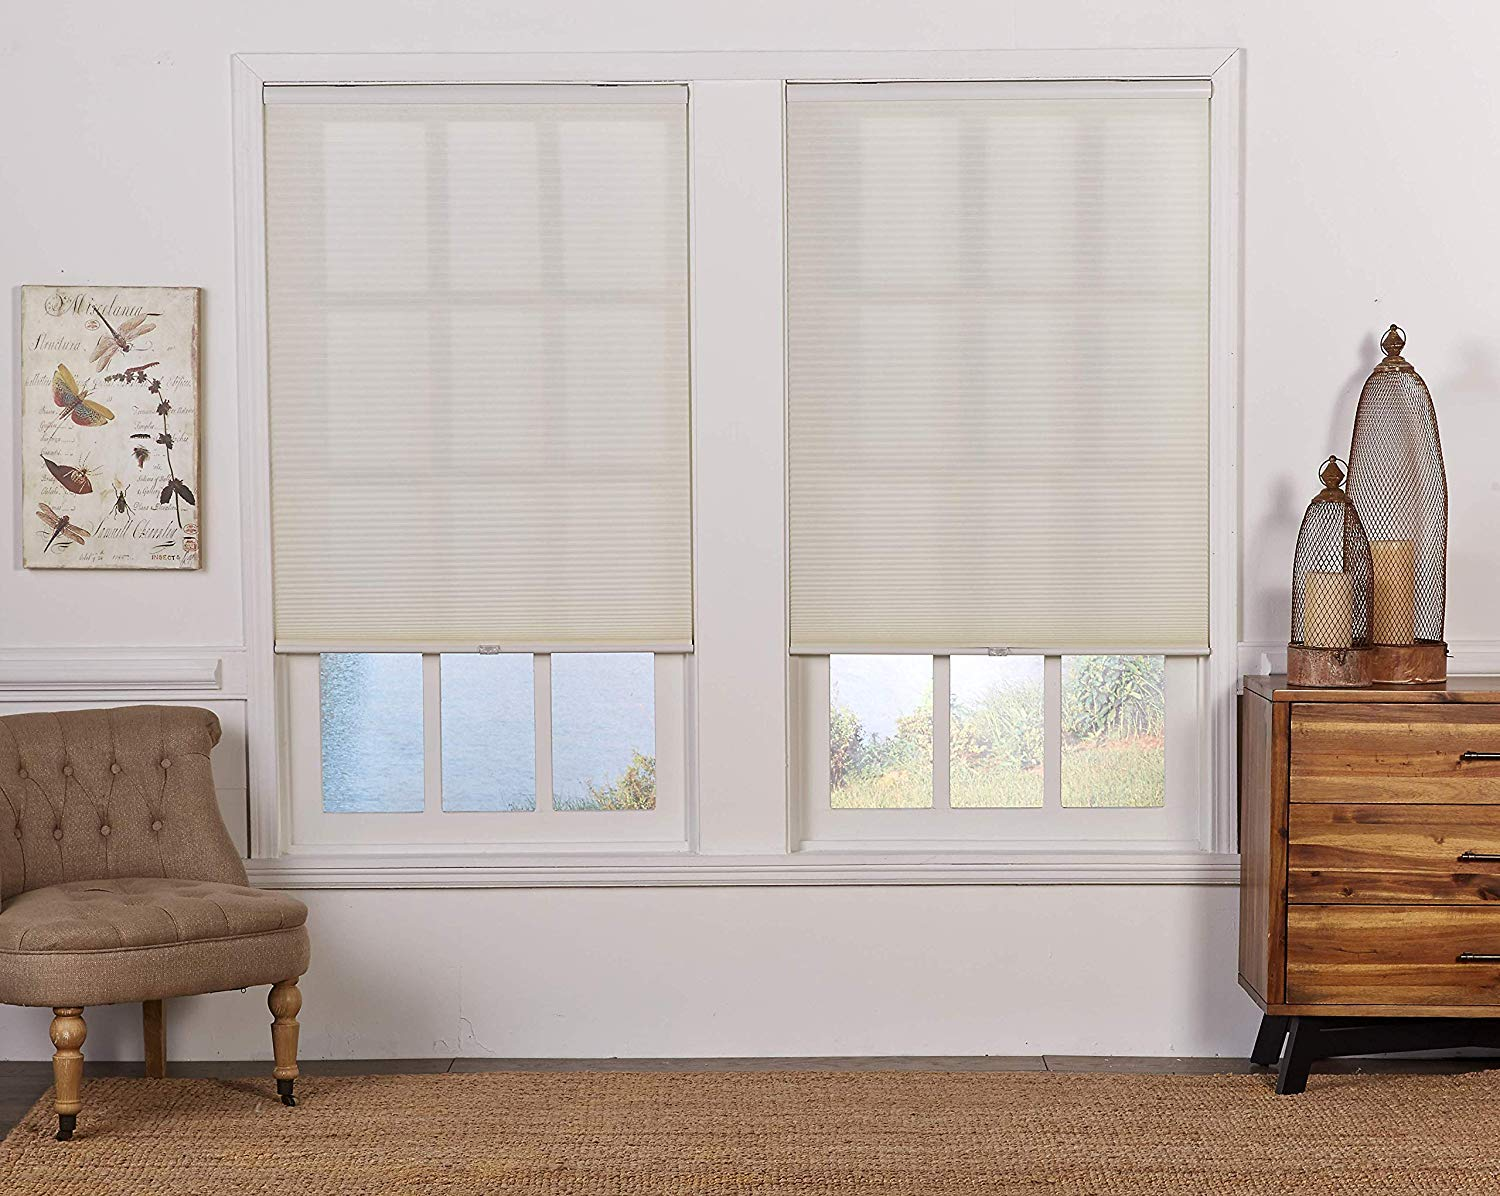 DEZ Furnishings QCCR514480 Cordless Light Filtering Cellular Shade Cream 51.5W x 48H Inches